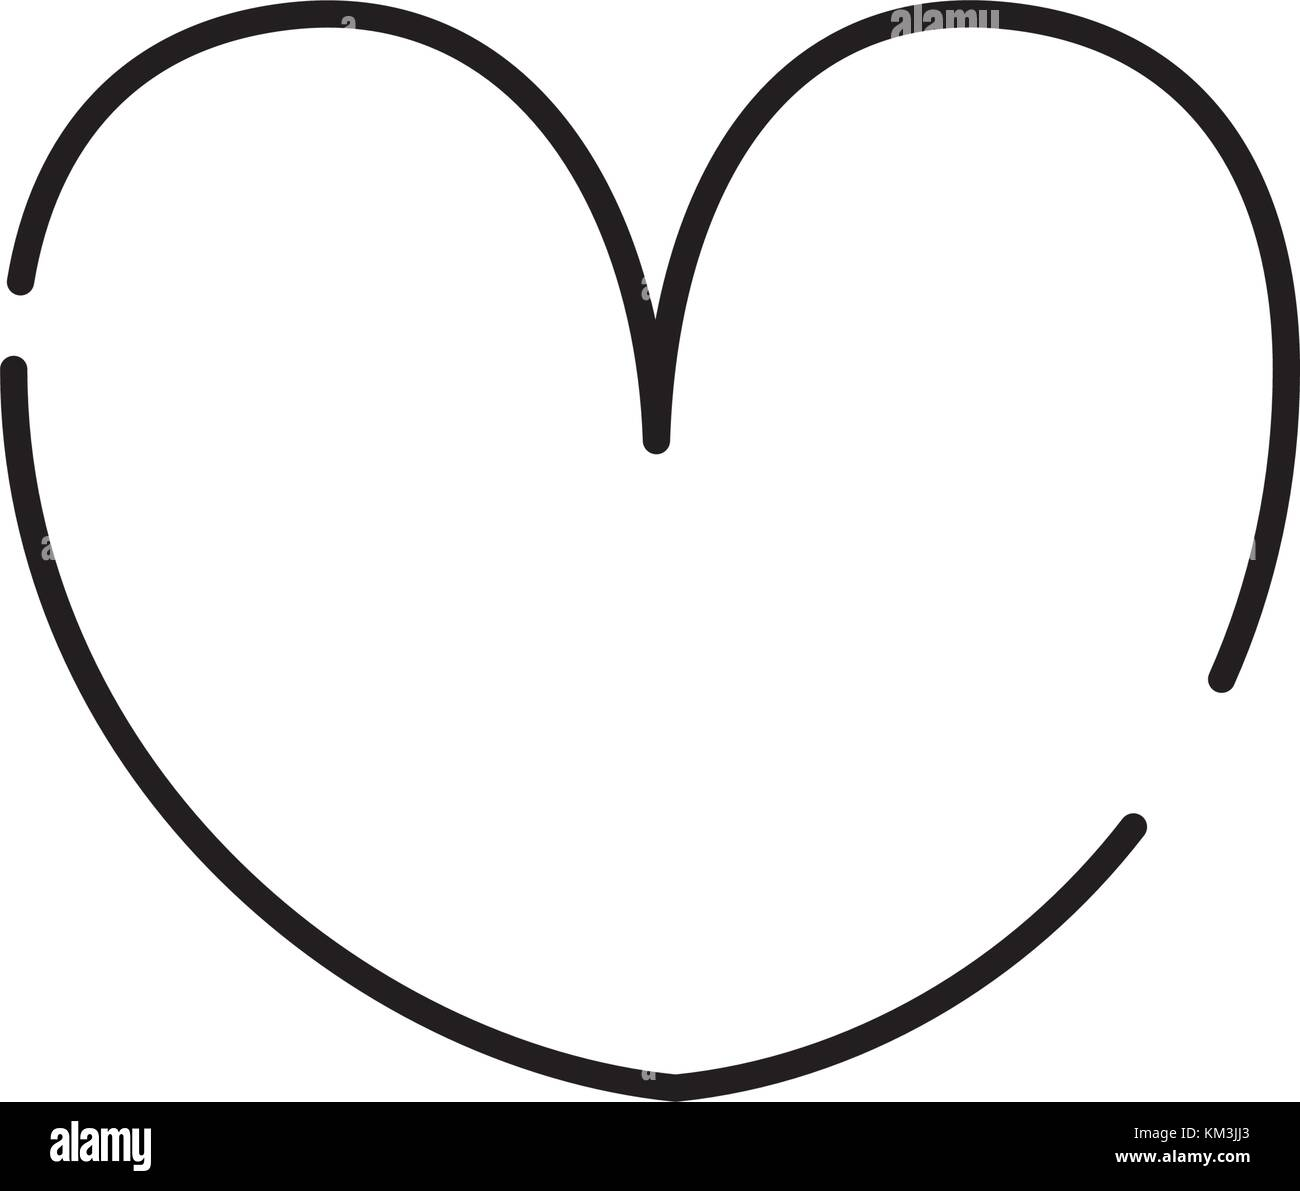 Line Heart Symbol Of Passion And Love Stock Vector Art